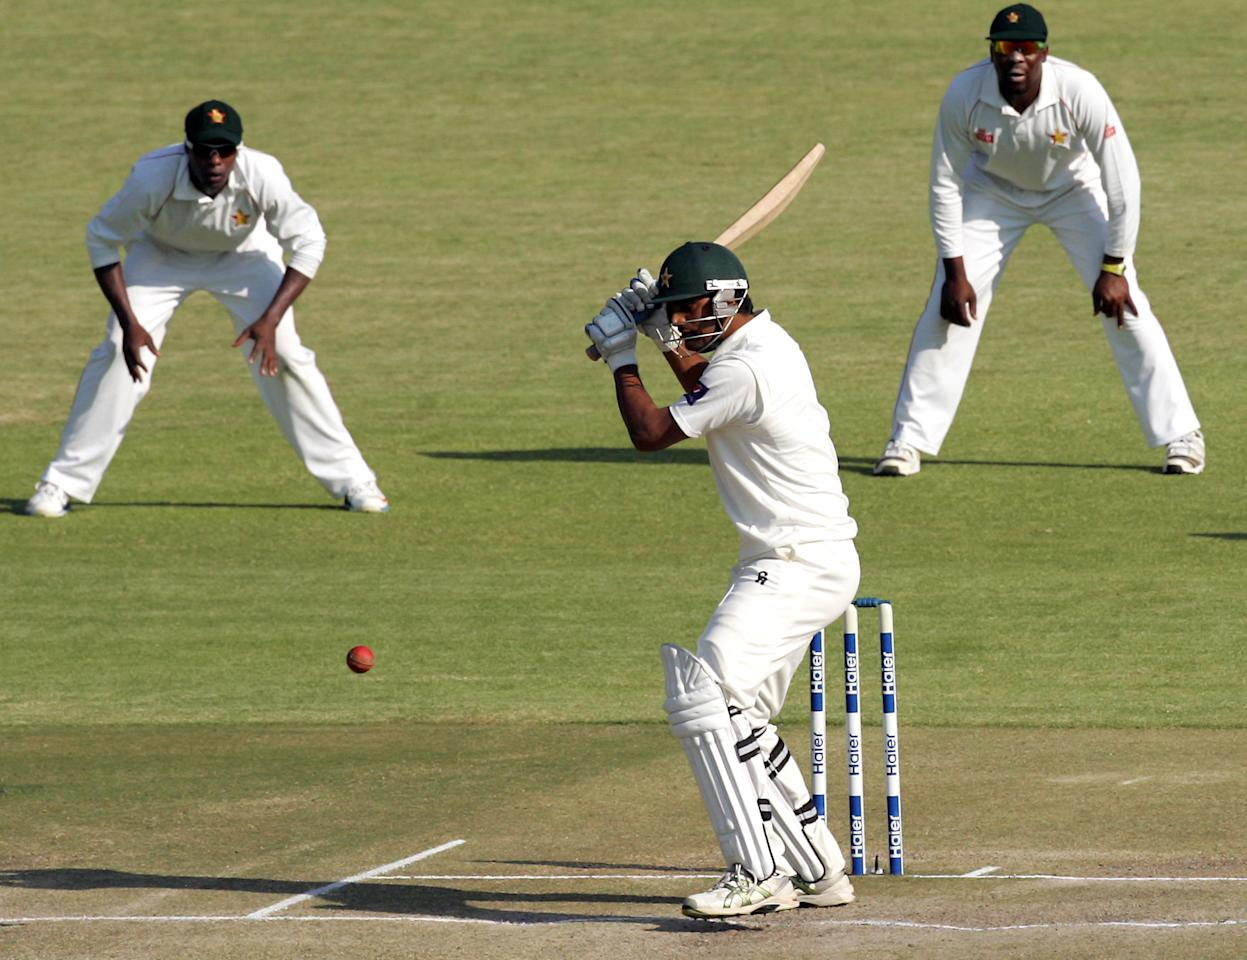 Pakistan's batsman Rahat Ali plays a shot on the fourth day of the first test cricket match between Pakistan and Zimbabwe at the Harare Sports Club on September 6, 2013. AFP PHOTO / JEKESAI NJIKIZANA        (Photo credit should read JEKESAI NJIKIZANA/AFP/Getty Images)